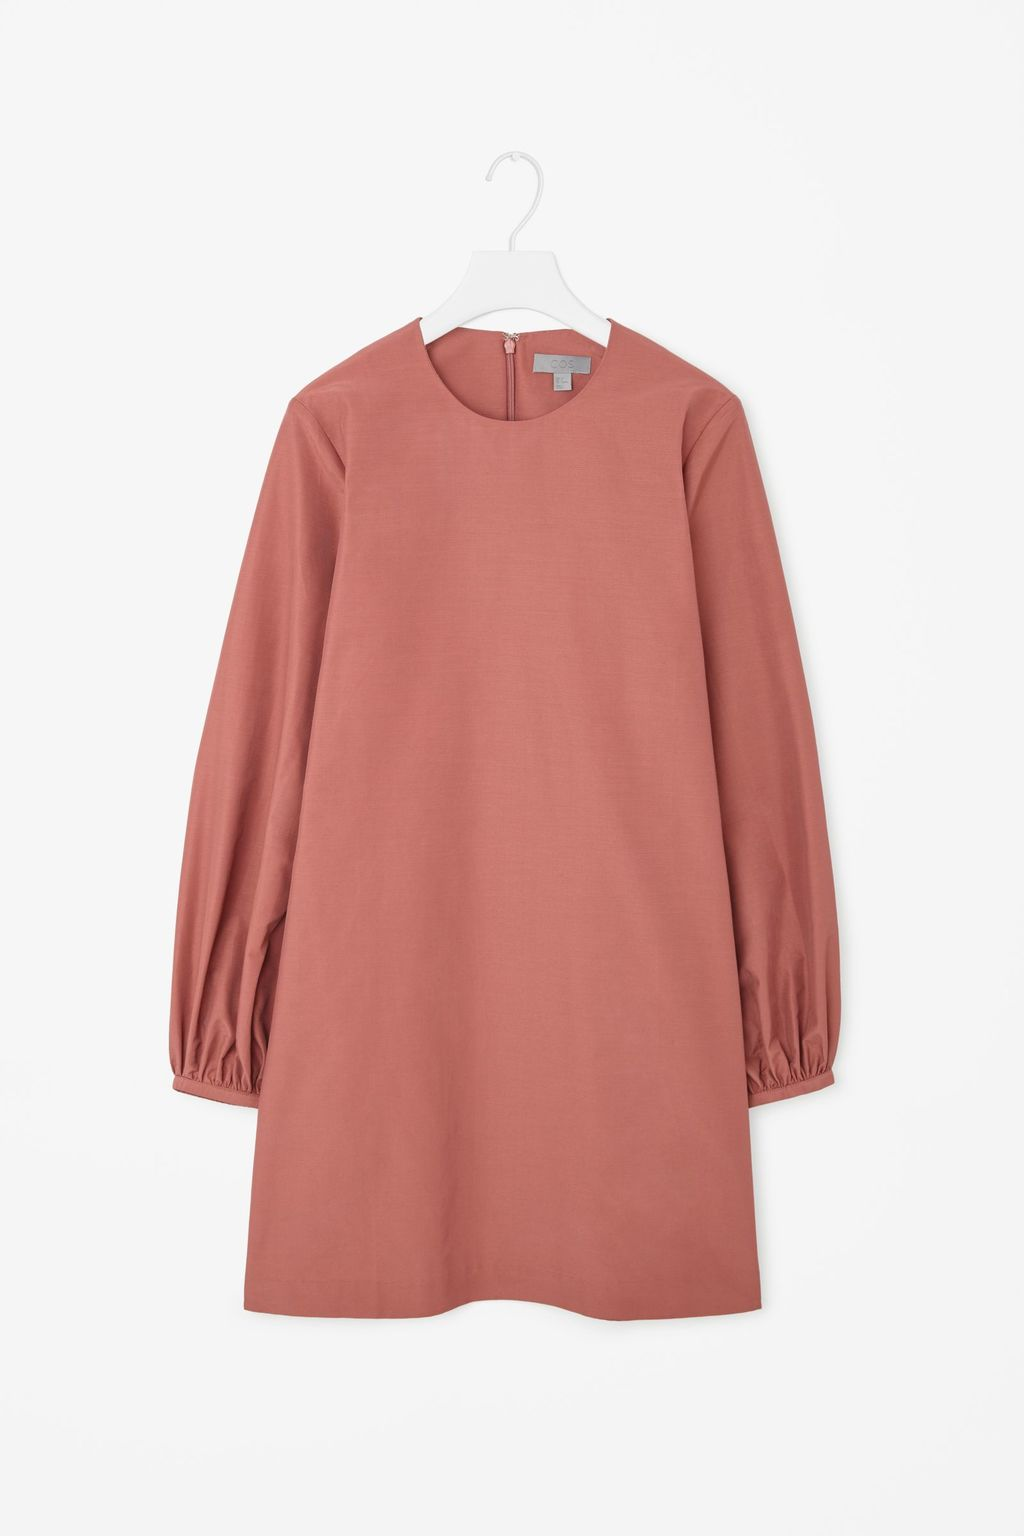 Dress With Gathered Cuffs - style: shift; length: mid thigh; pattern: plain; sleeve style: balloon; predominant colour: pink; occasions: casual, creative work; fit: straight cut; fibres: cotton - mix; neckline: crew; sleeve length: long sleeve; pattern type: fabric; texture group: woven light midweight; season: a/w 2015; trends: pink aw 15; wardrobe: highlight